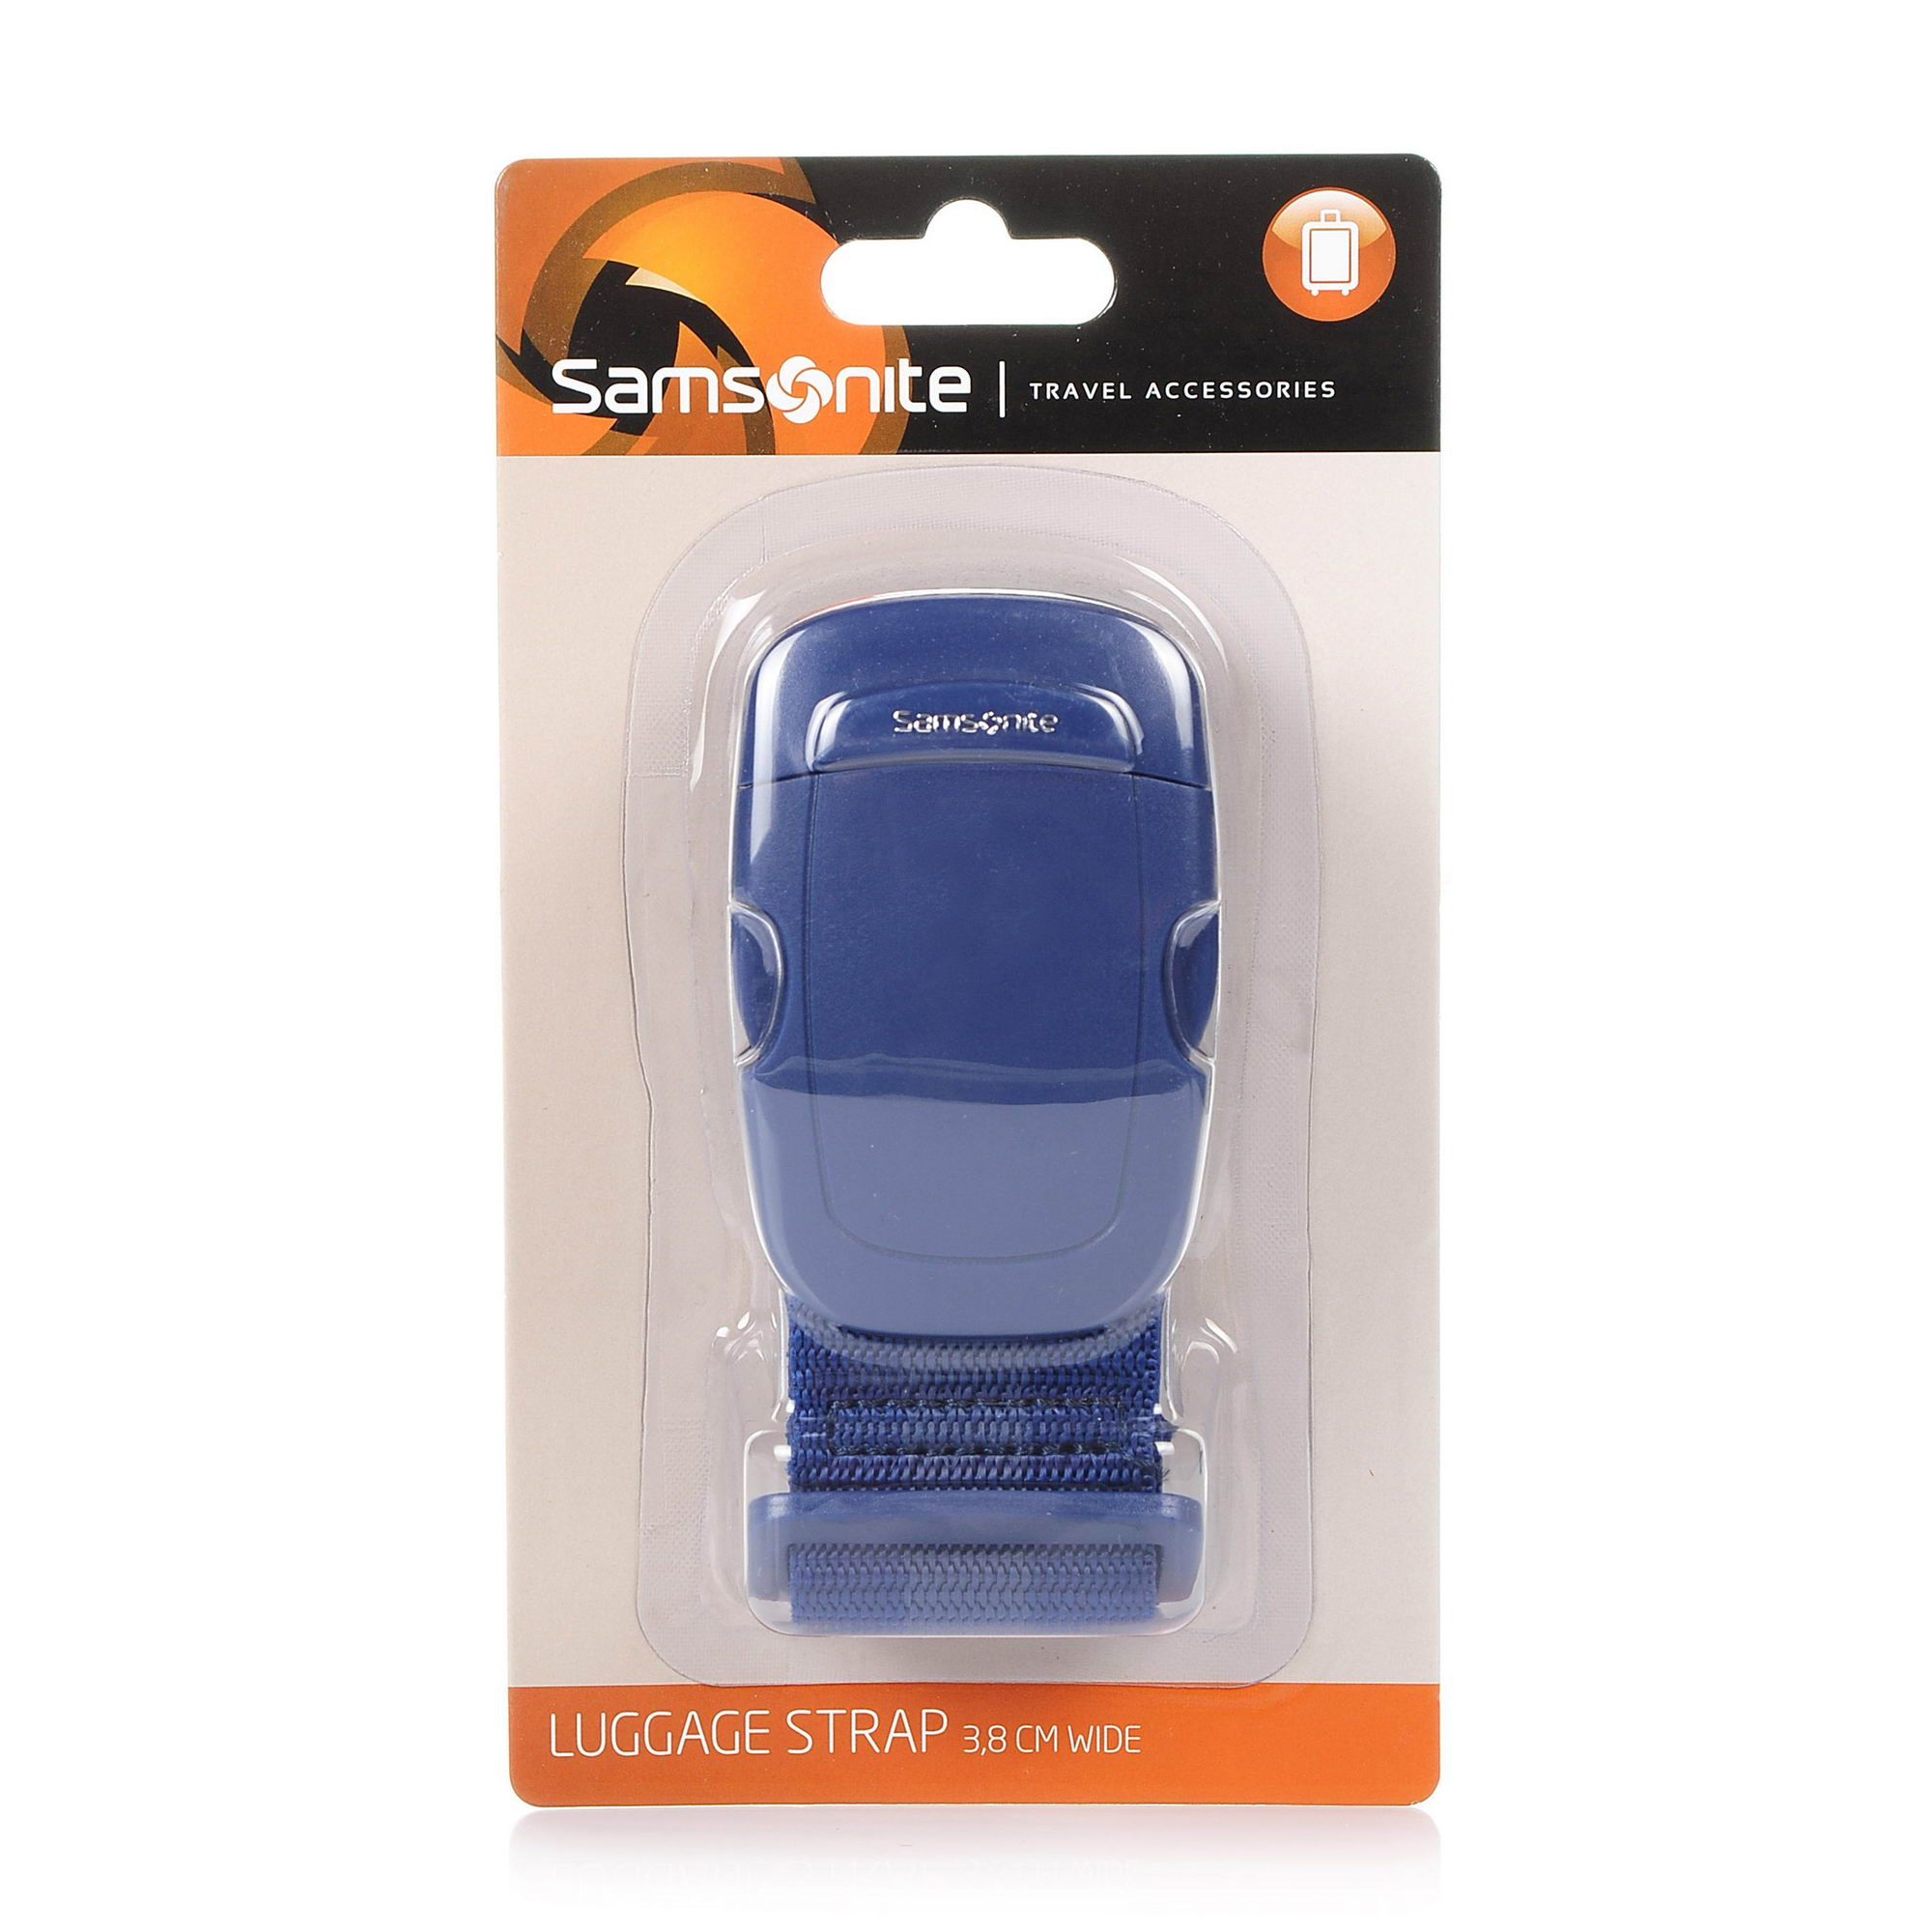 Ιμάντας Αποσκευών Samsonite Travel Accessories Luggage Strap 3,8 cm Wide 2 61609